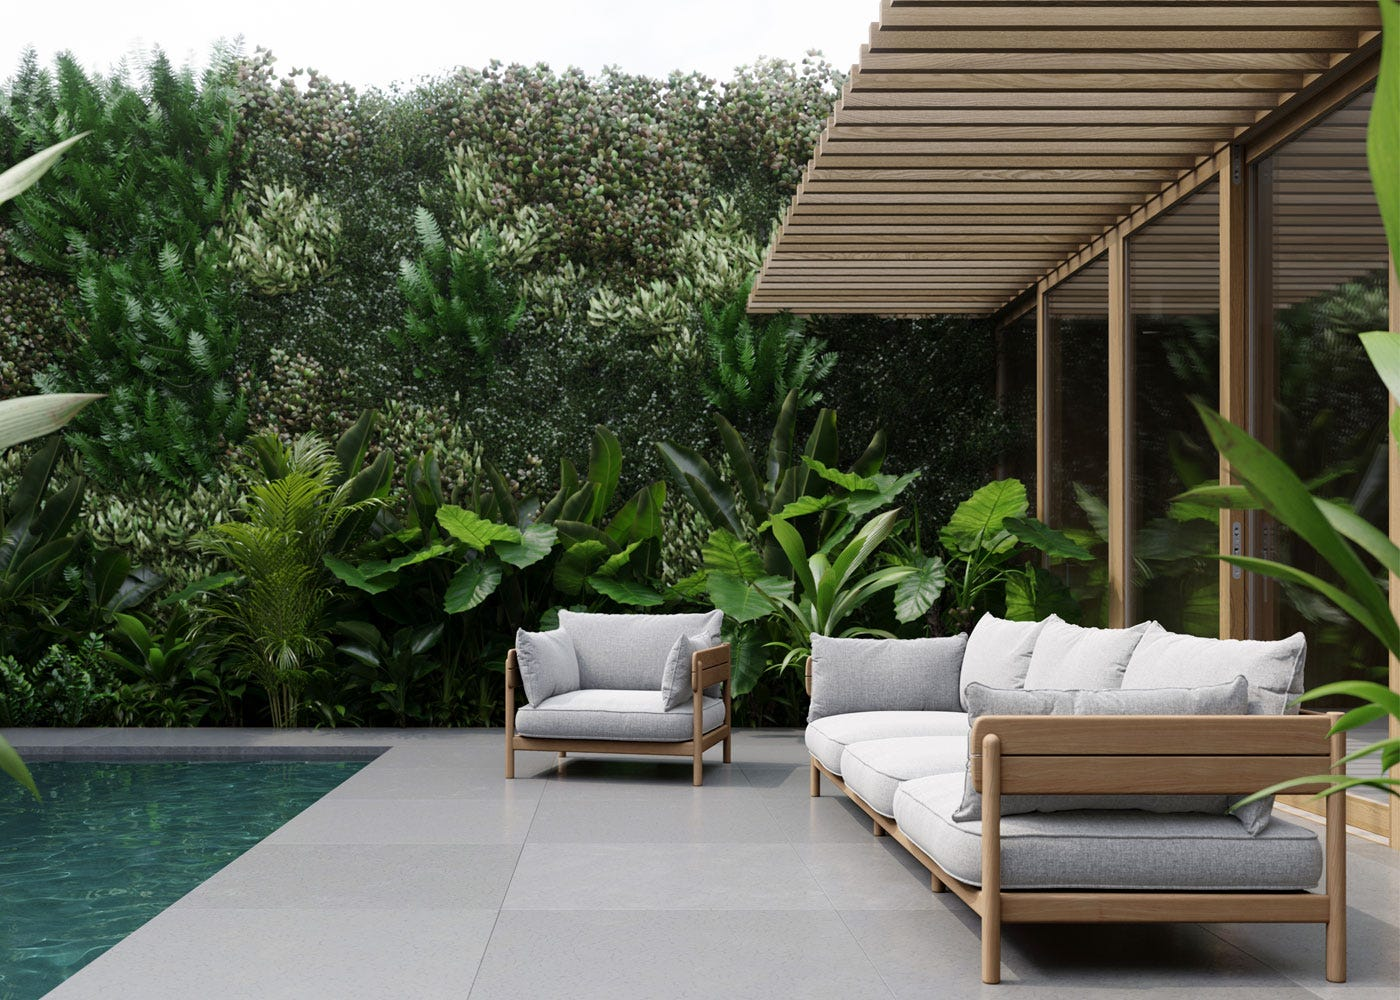 As shown: Tanso Outdoor Sofa Armchair and 3 seater sofa in grey.